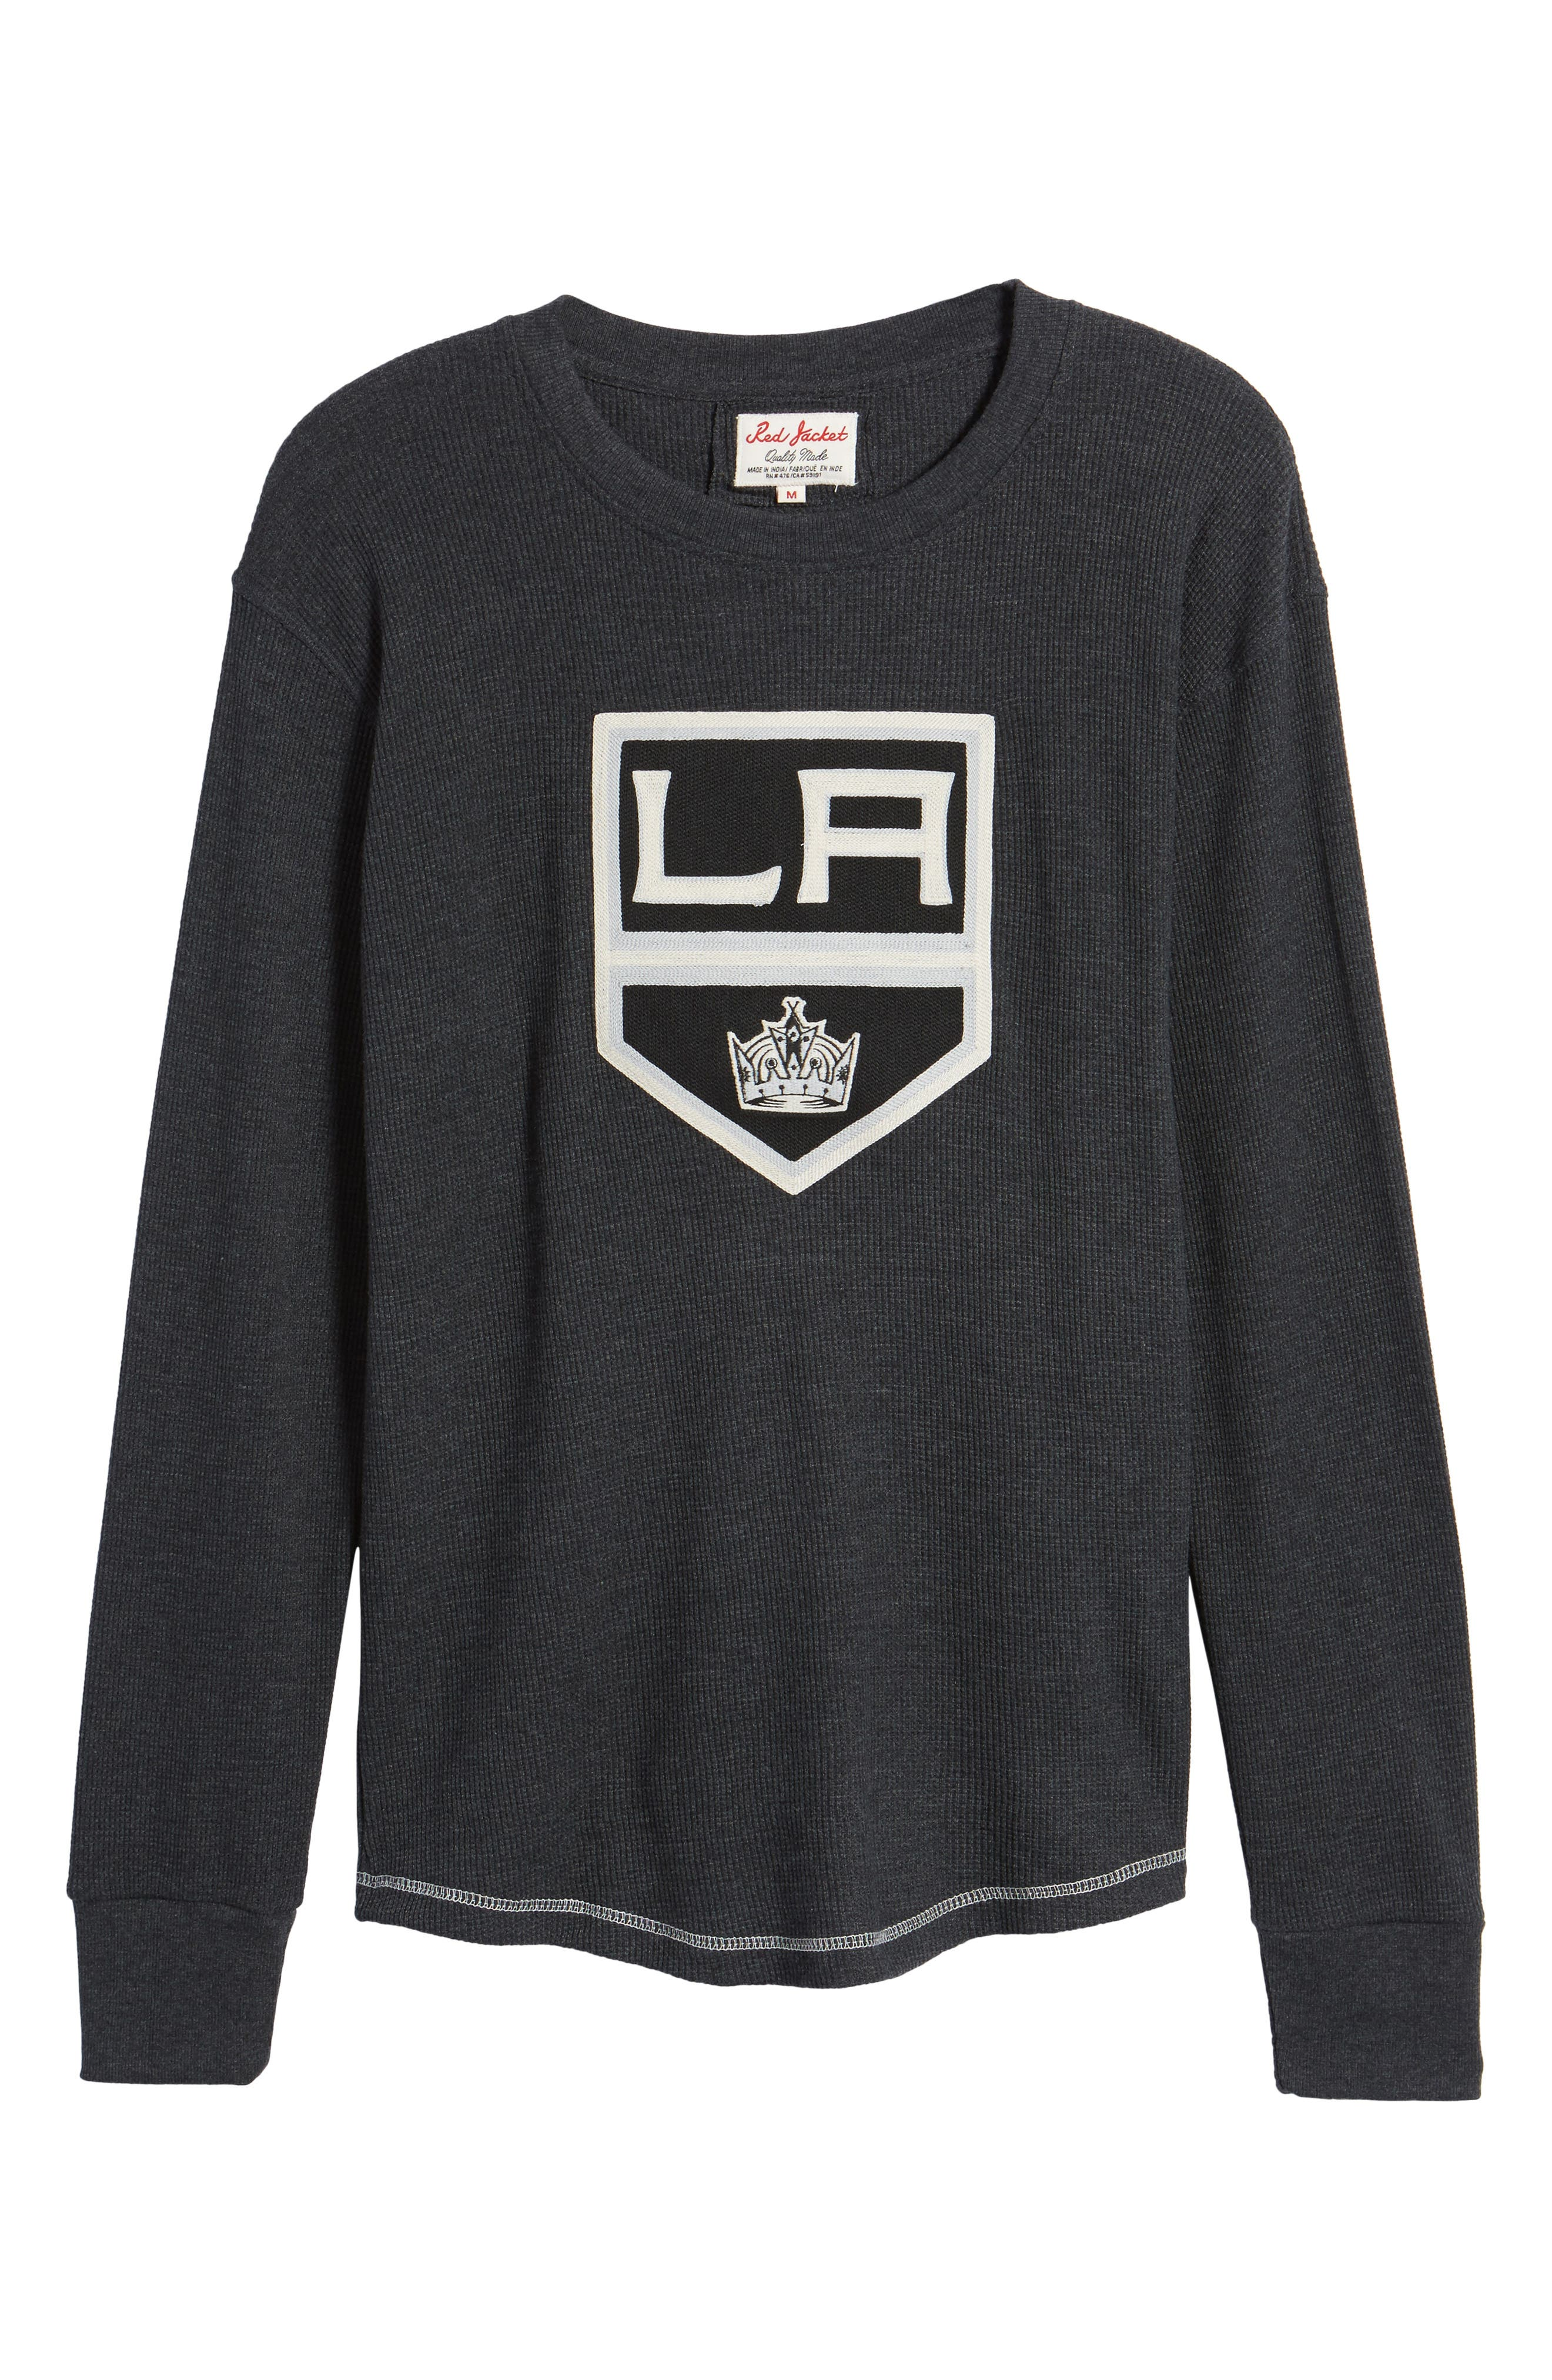 Los Angeles Kings Embroidered Long Sleeve Thermal Shirt,                             Alternate thumbnail 6, color,                             001